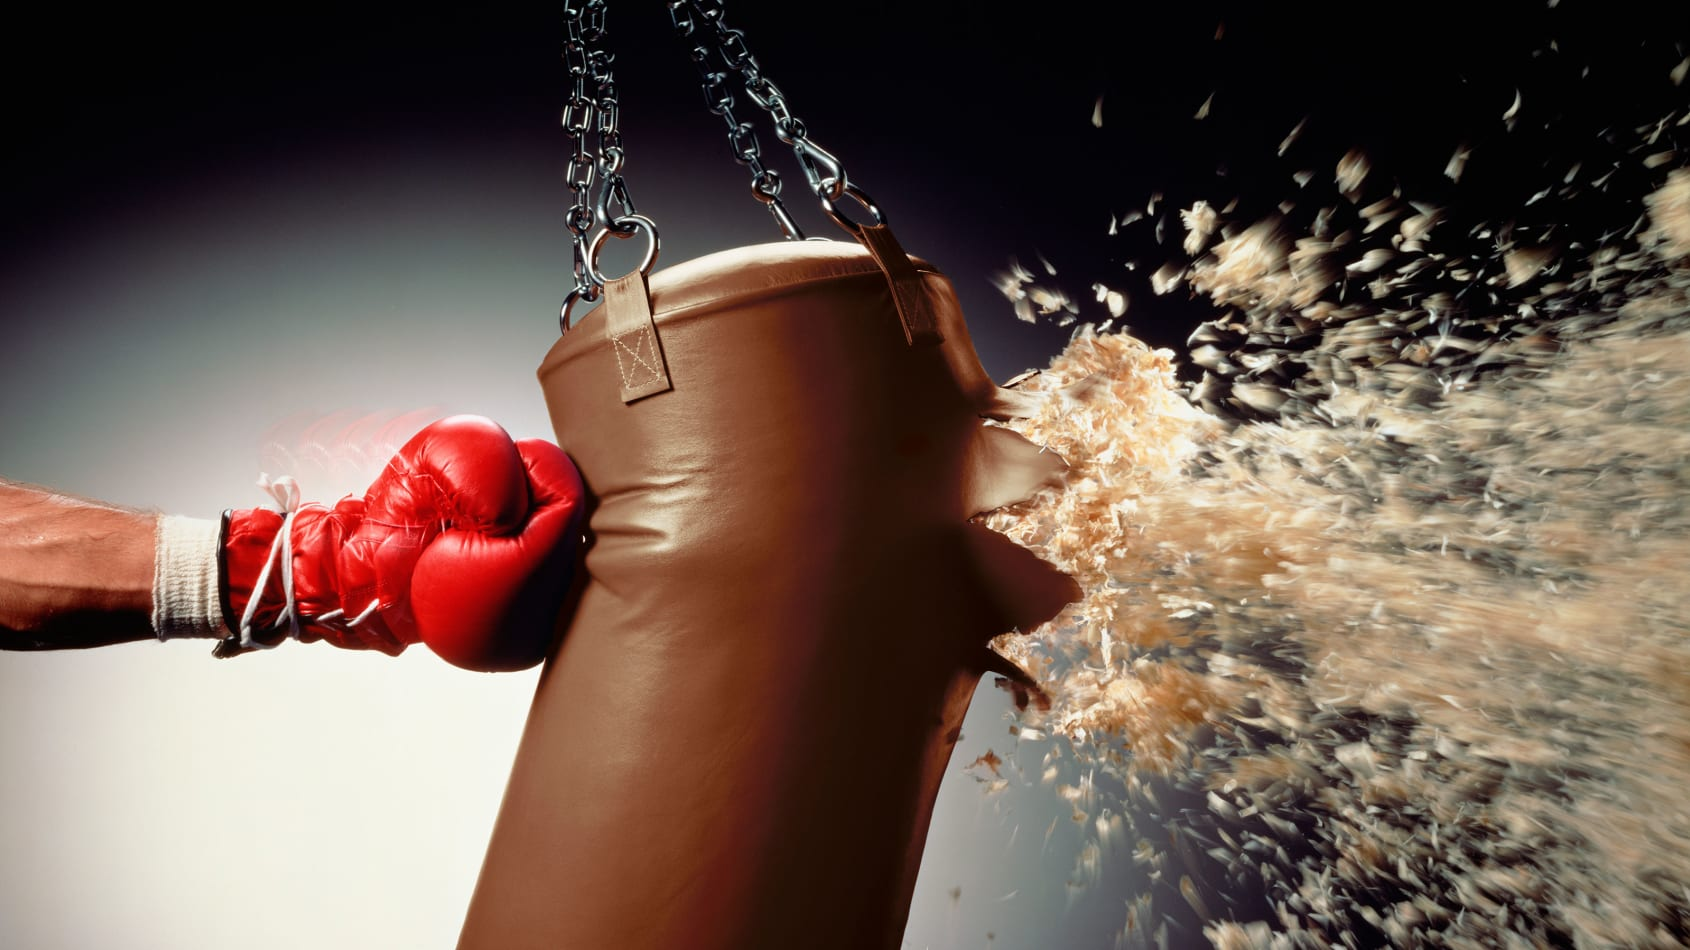 Man's arm punching a punching bag that's exploding.